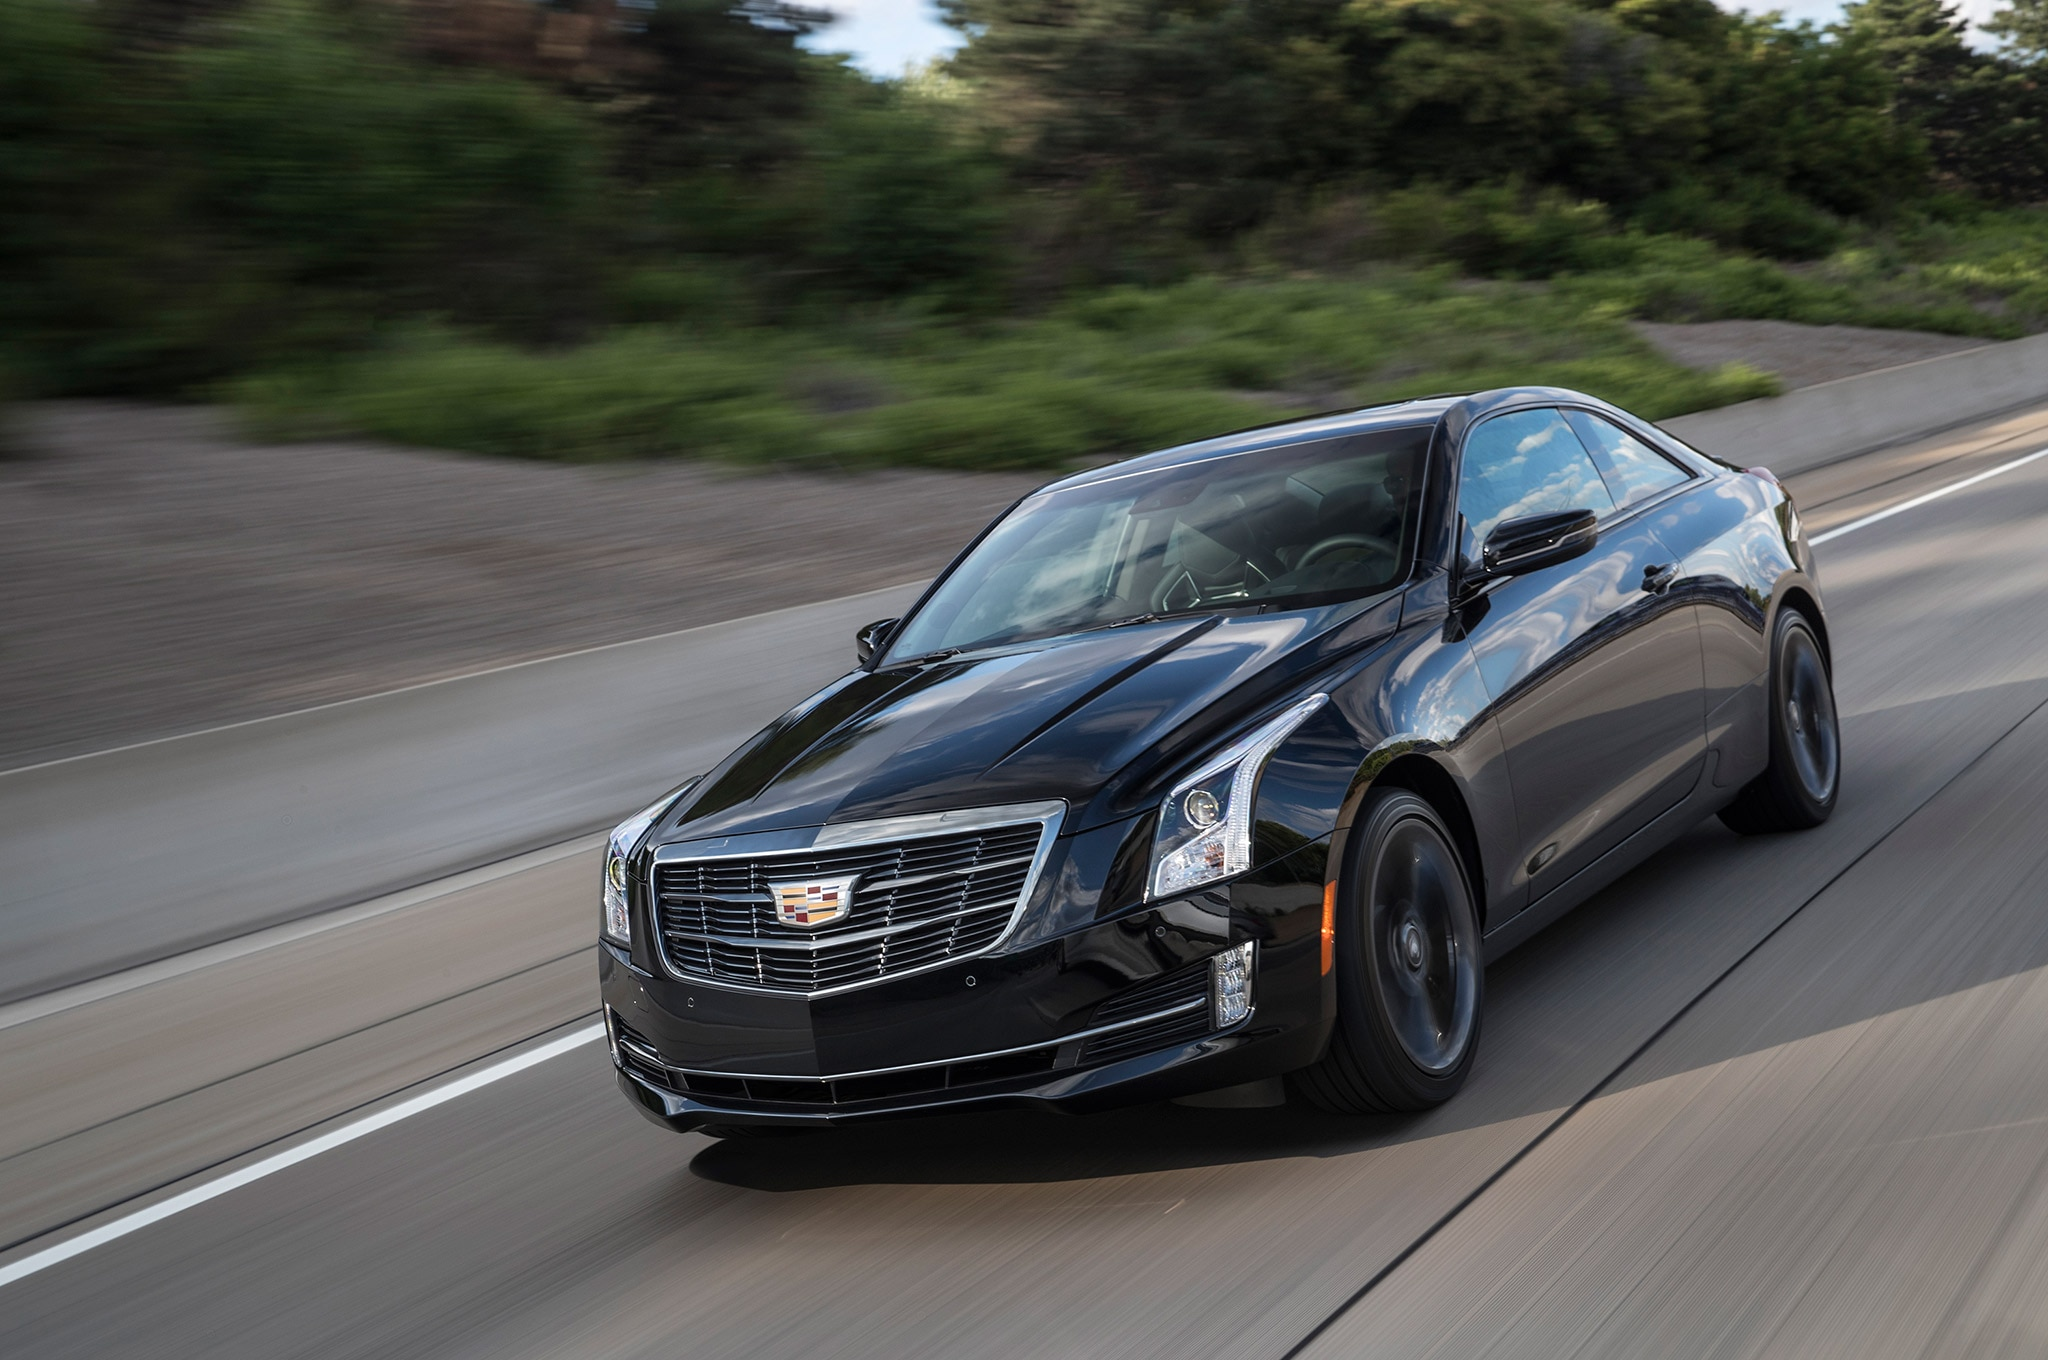 2017 Cadillac ATS Coupe Front Three Quarters In Motion 1